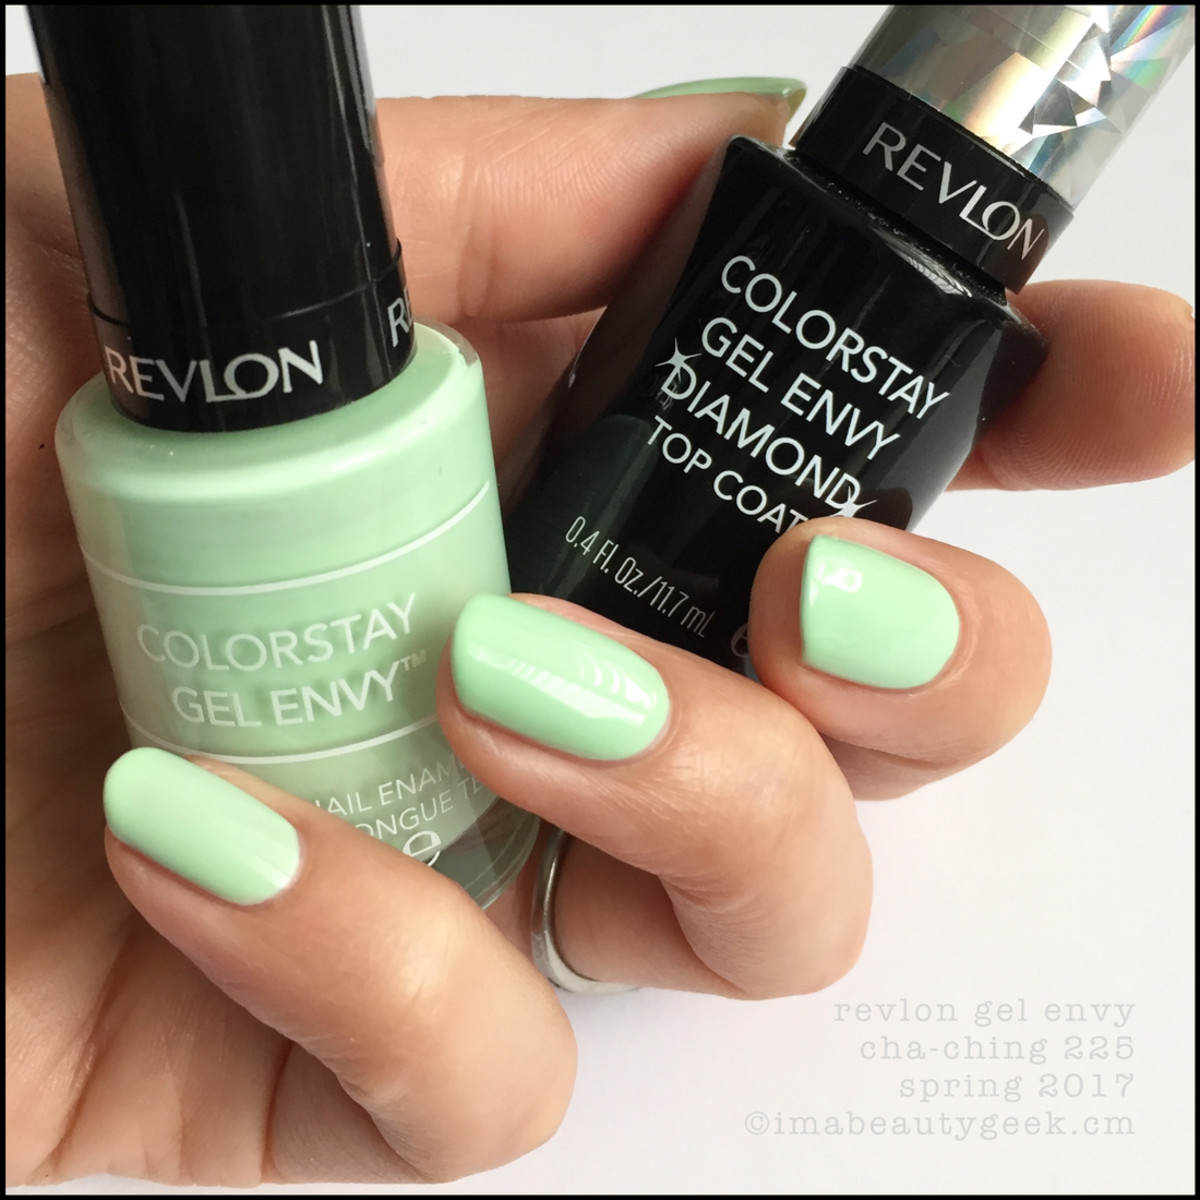 REVLON GEL ENVY SWATCHES REVIEW SPRING 2017 - Beautygeeks